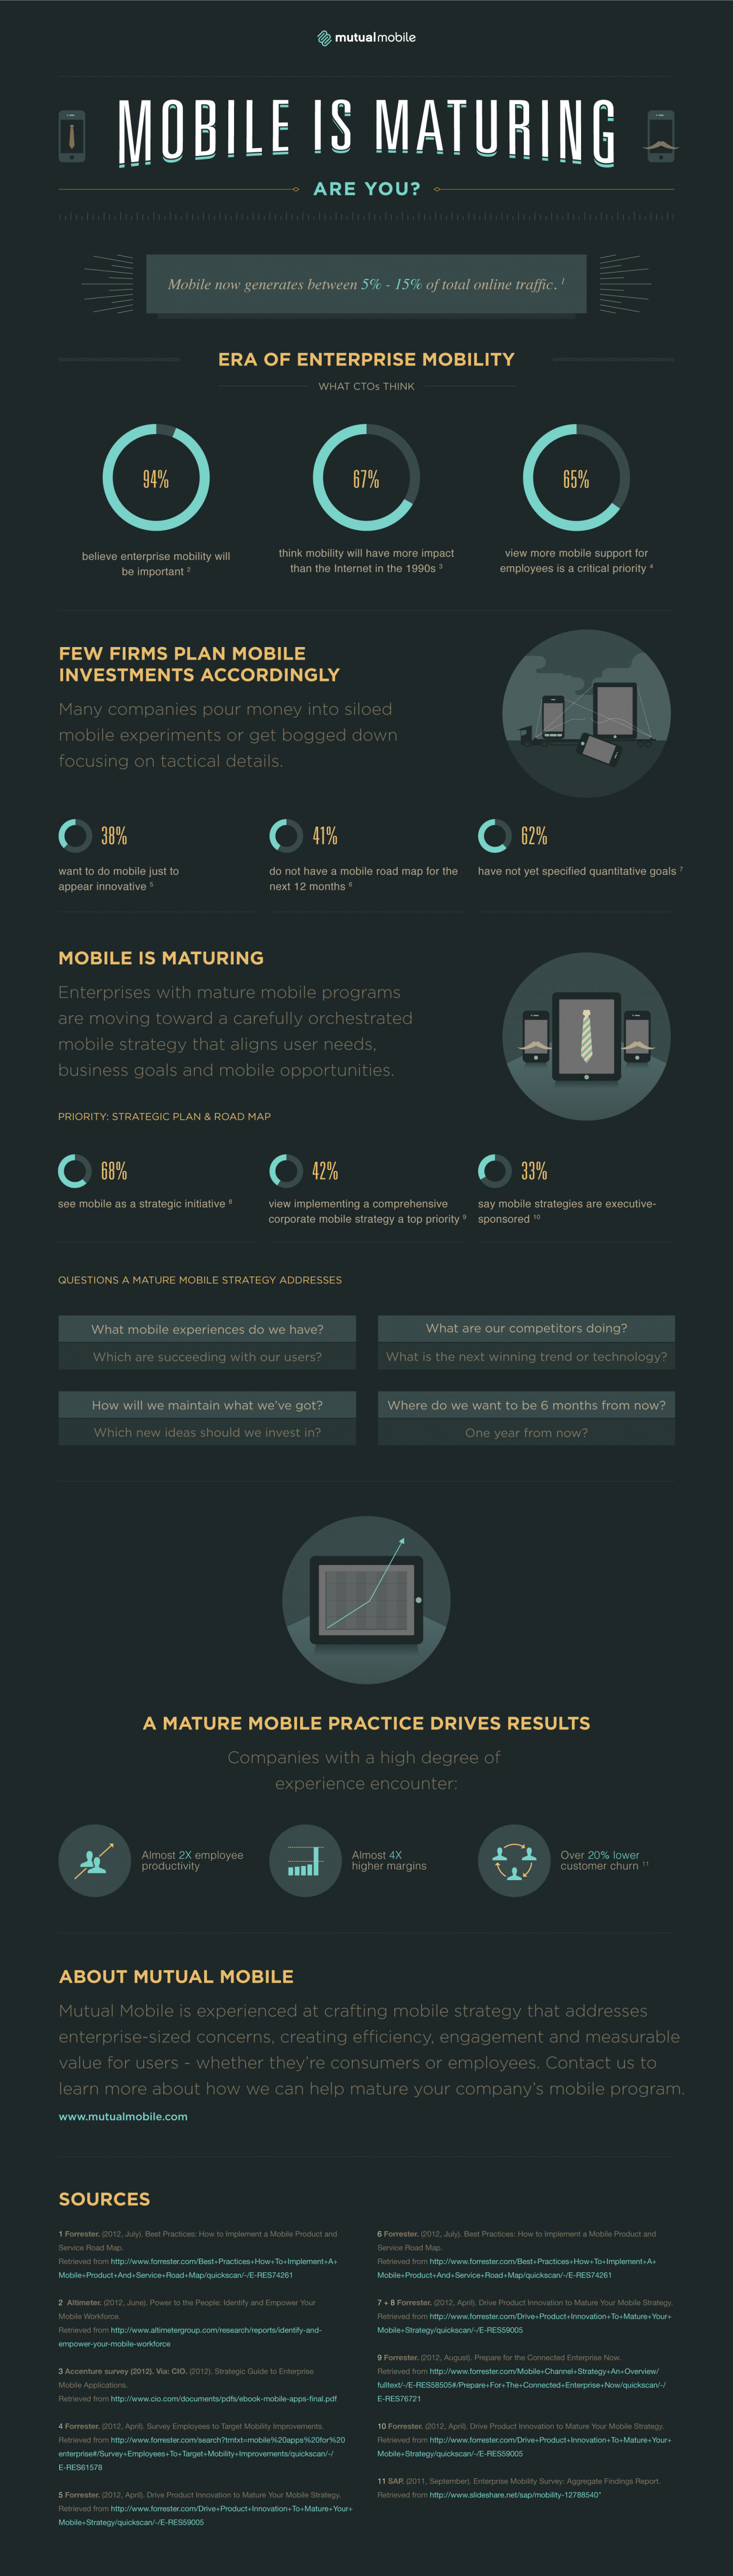 Mobile Is Maturing Are You? Infographic